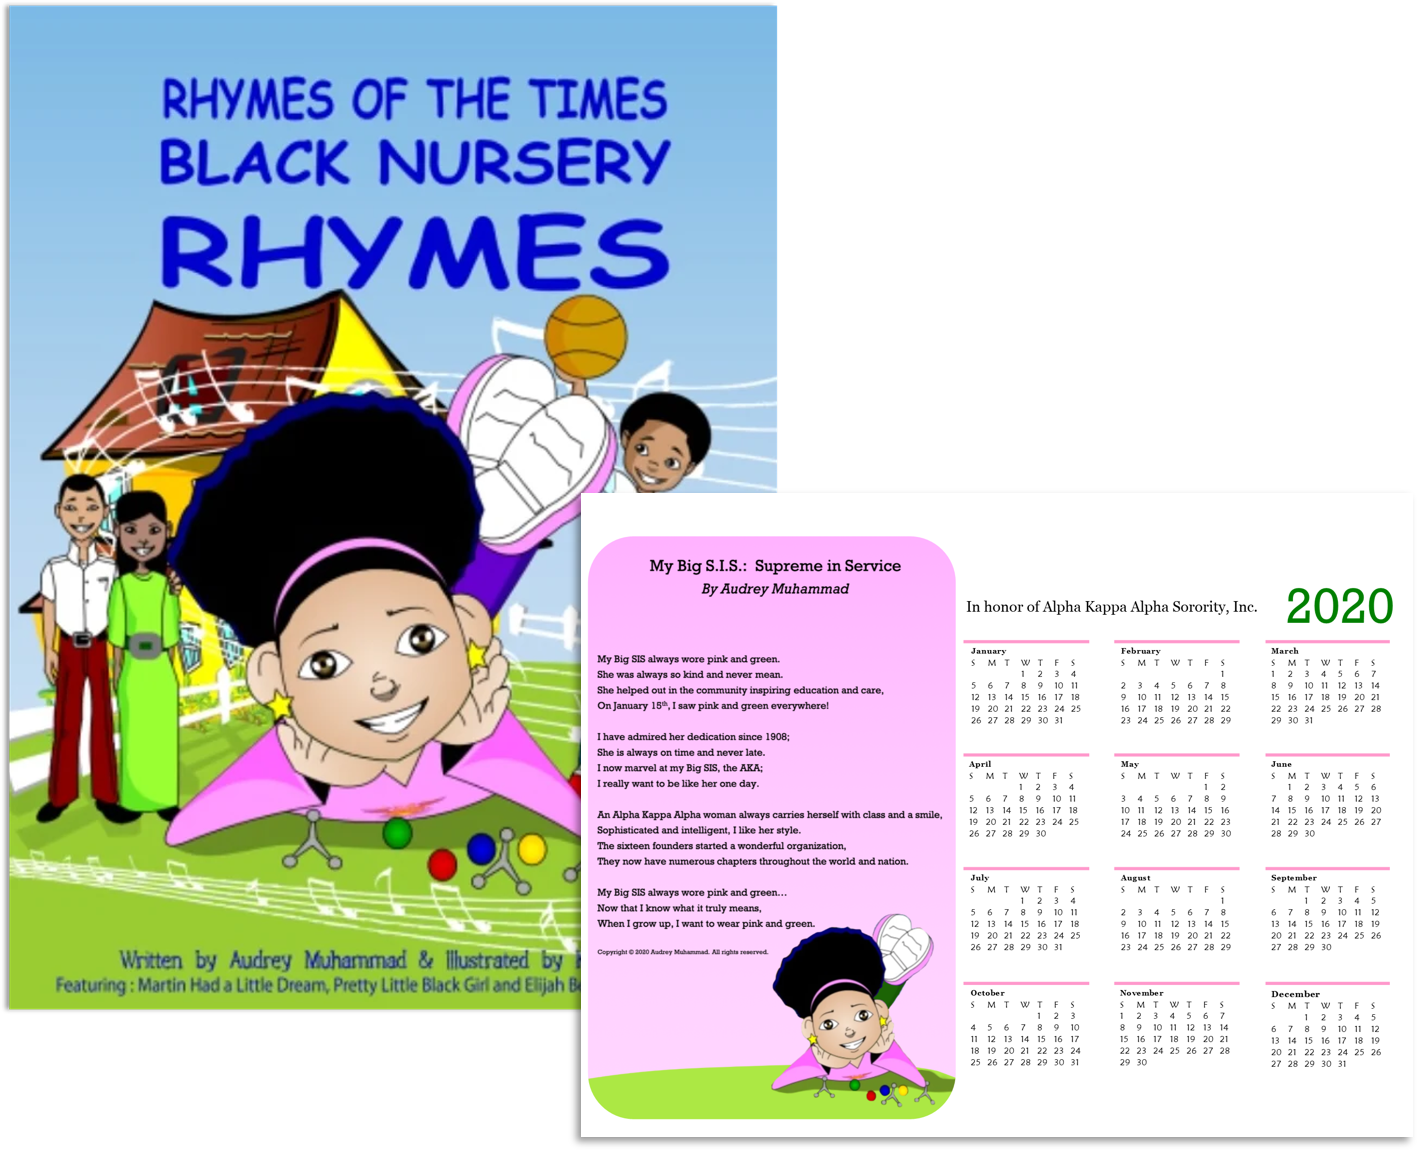 Image of AKA SPECIAL: Rhymes of the Times